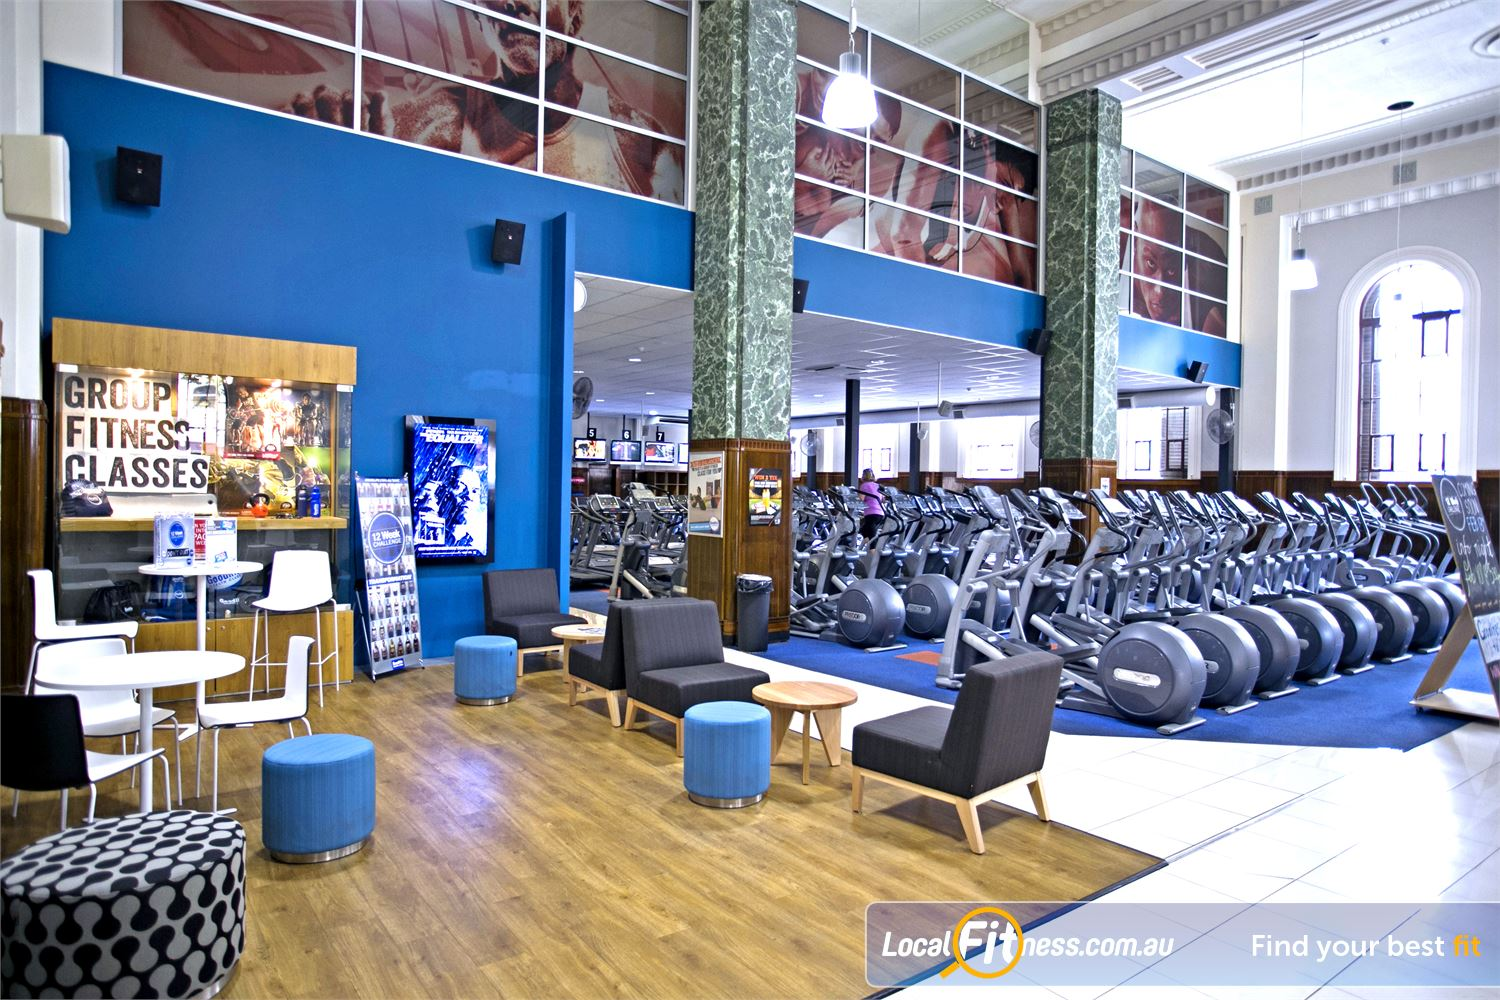 Goodlife Health Clubs Adelaide City Adelaide Relax in our spacious members lounge.